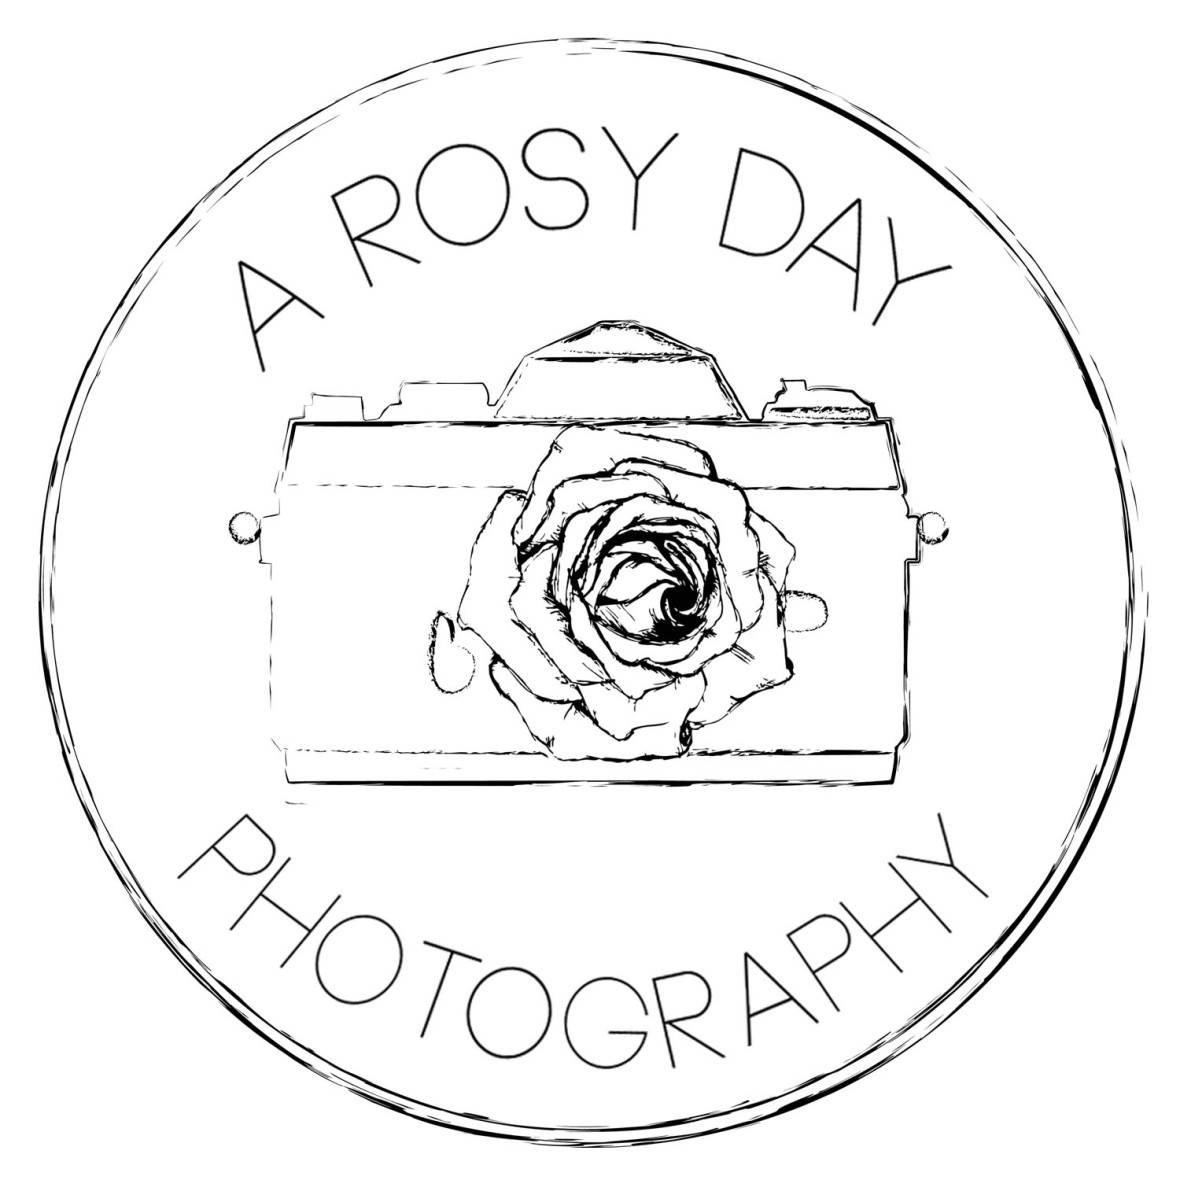 a-rosy-day-white